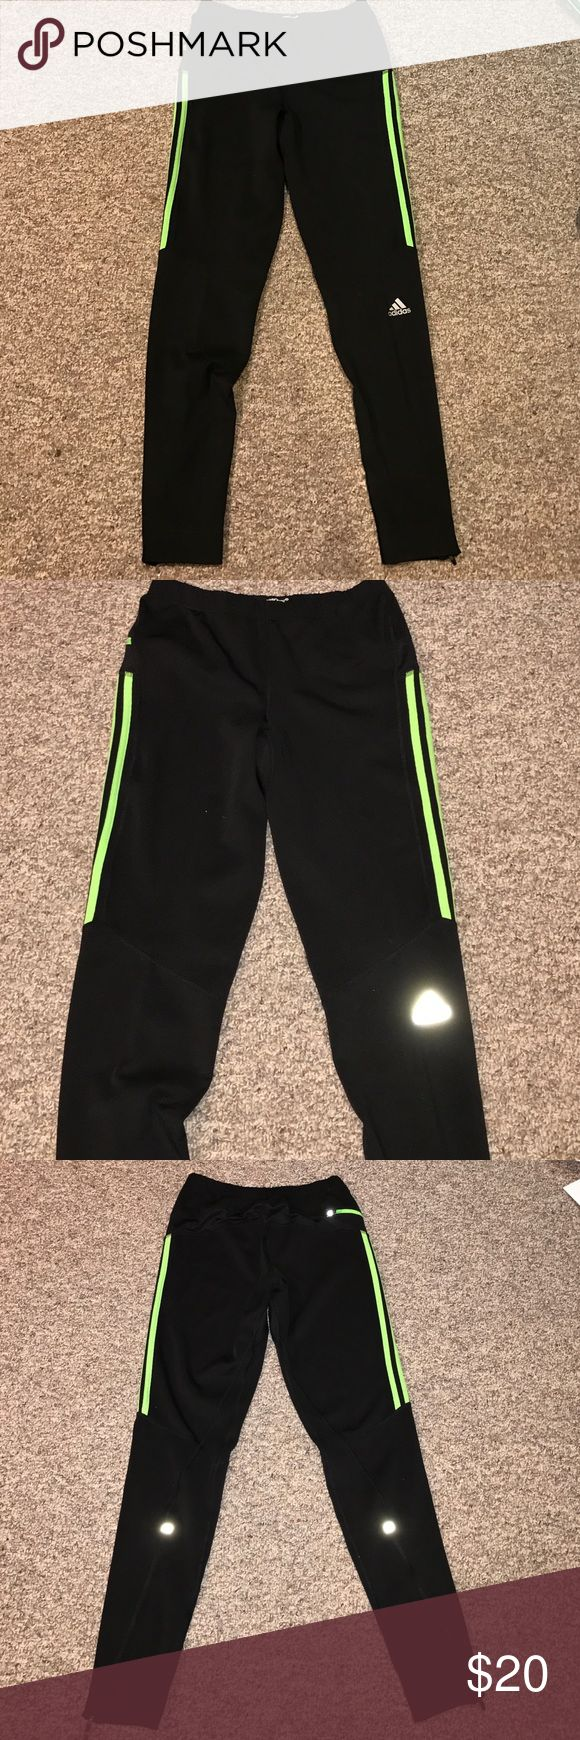 🚩NWOT Adidas Response Running Pants New without tags, never worn. Size Small, 30 Inch inseam. Adidas response running pants with climatize. Reflective logo and on the back as shown by pictures one back pocket on the hip at the top right. Pants zip at the bottom up to the top of calf. Very stretchy and soft nice fabric. Adidas Pants Sweatpants & Joggers